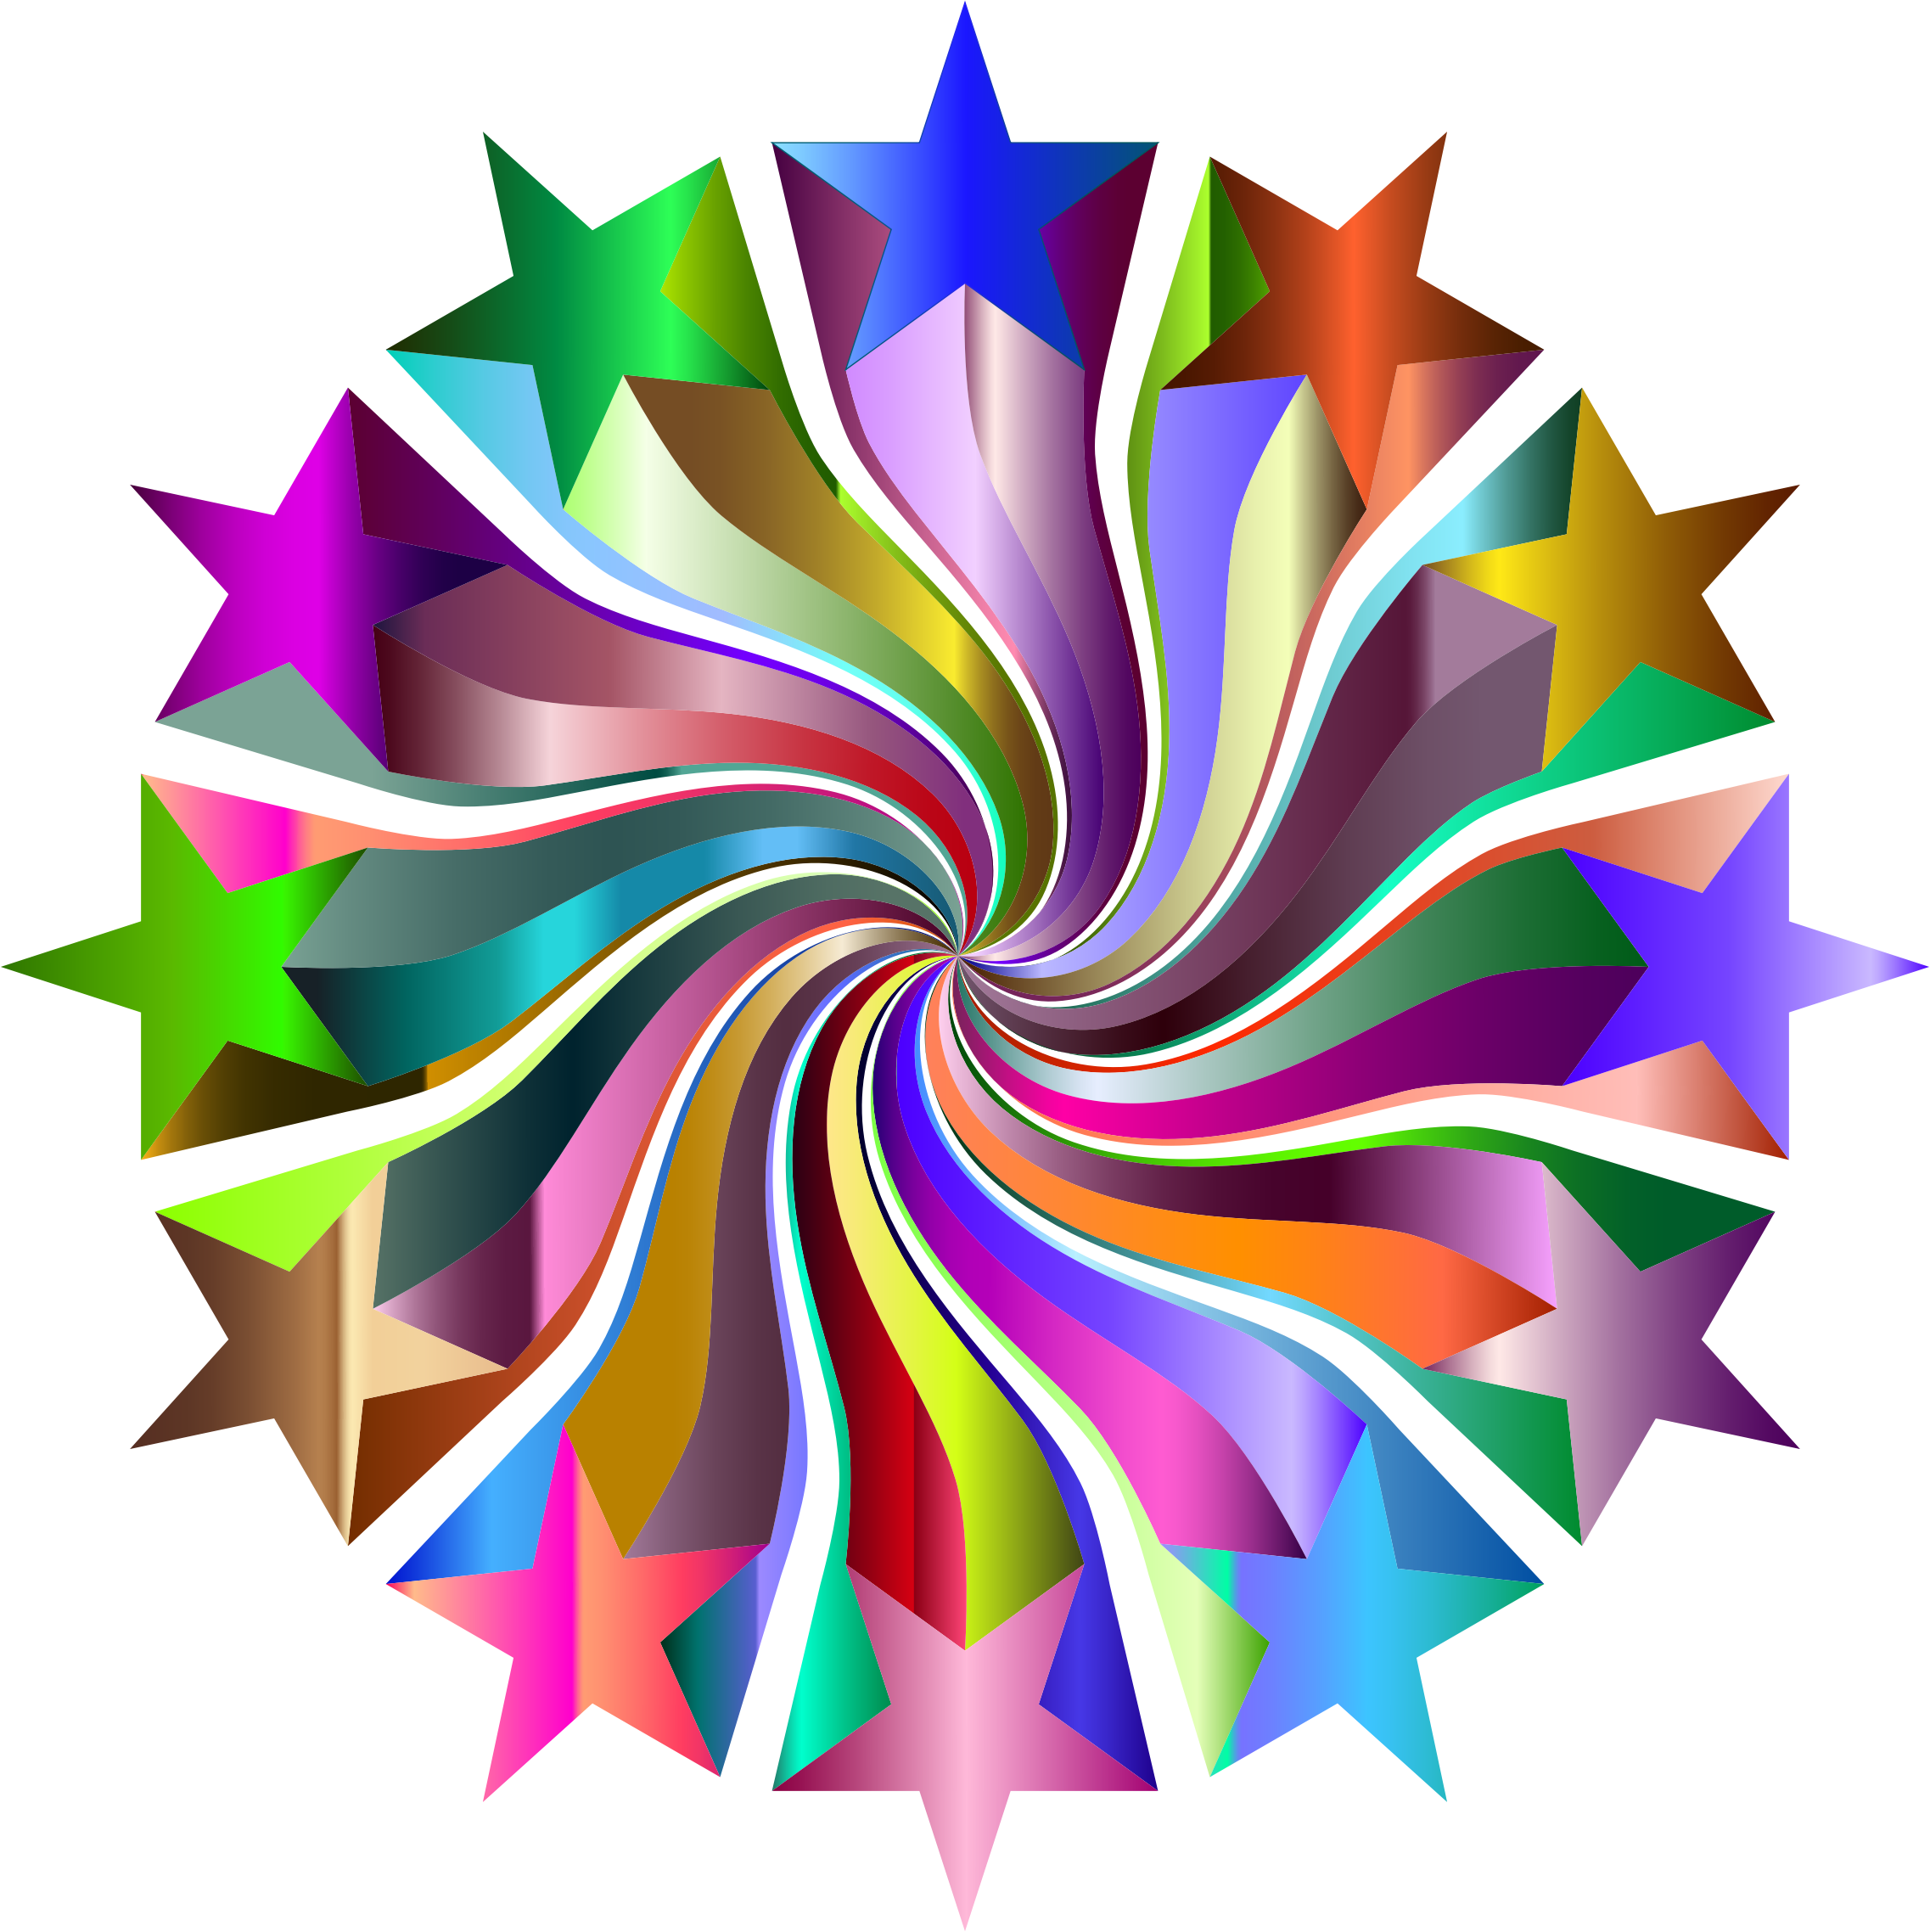 Prismatic Starburst Vortex 4 by GDJ